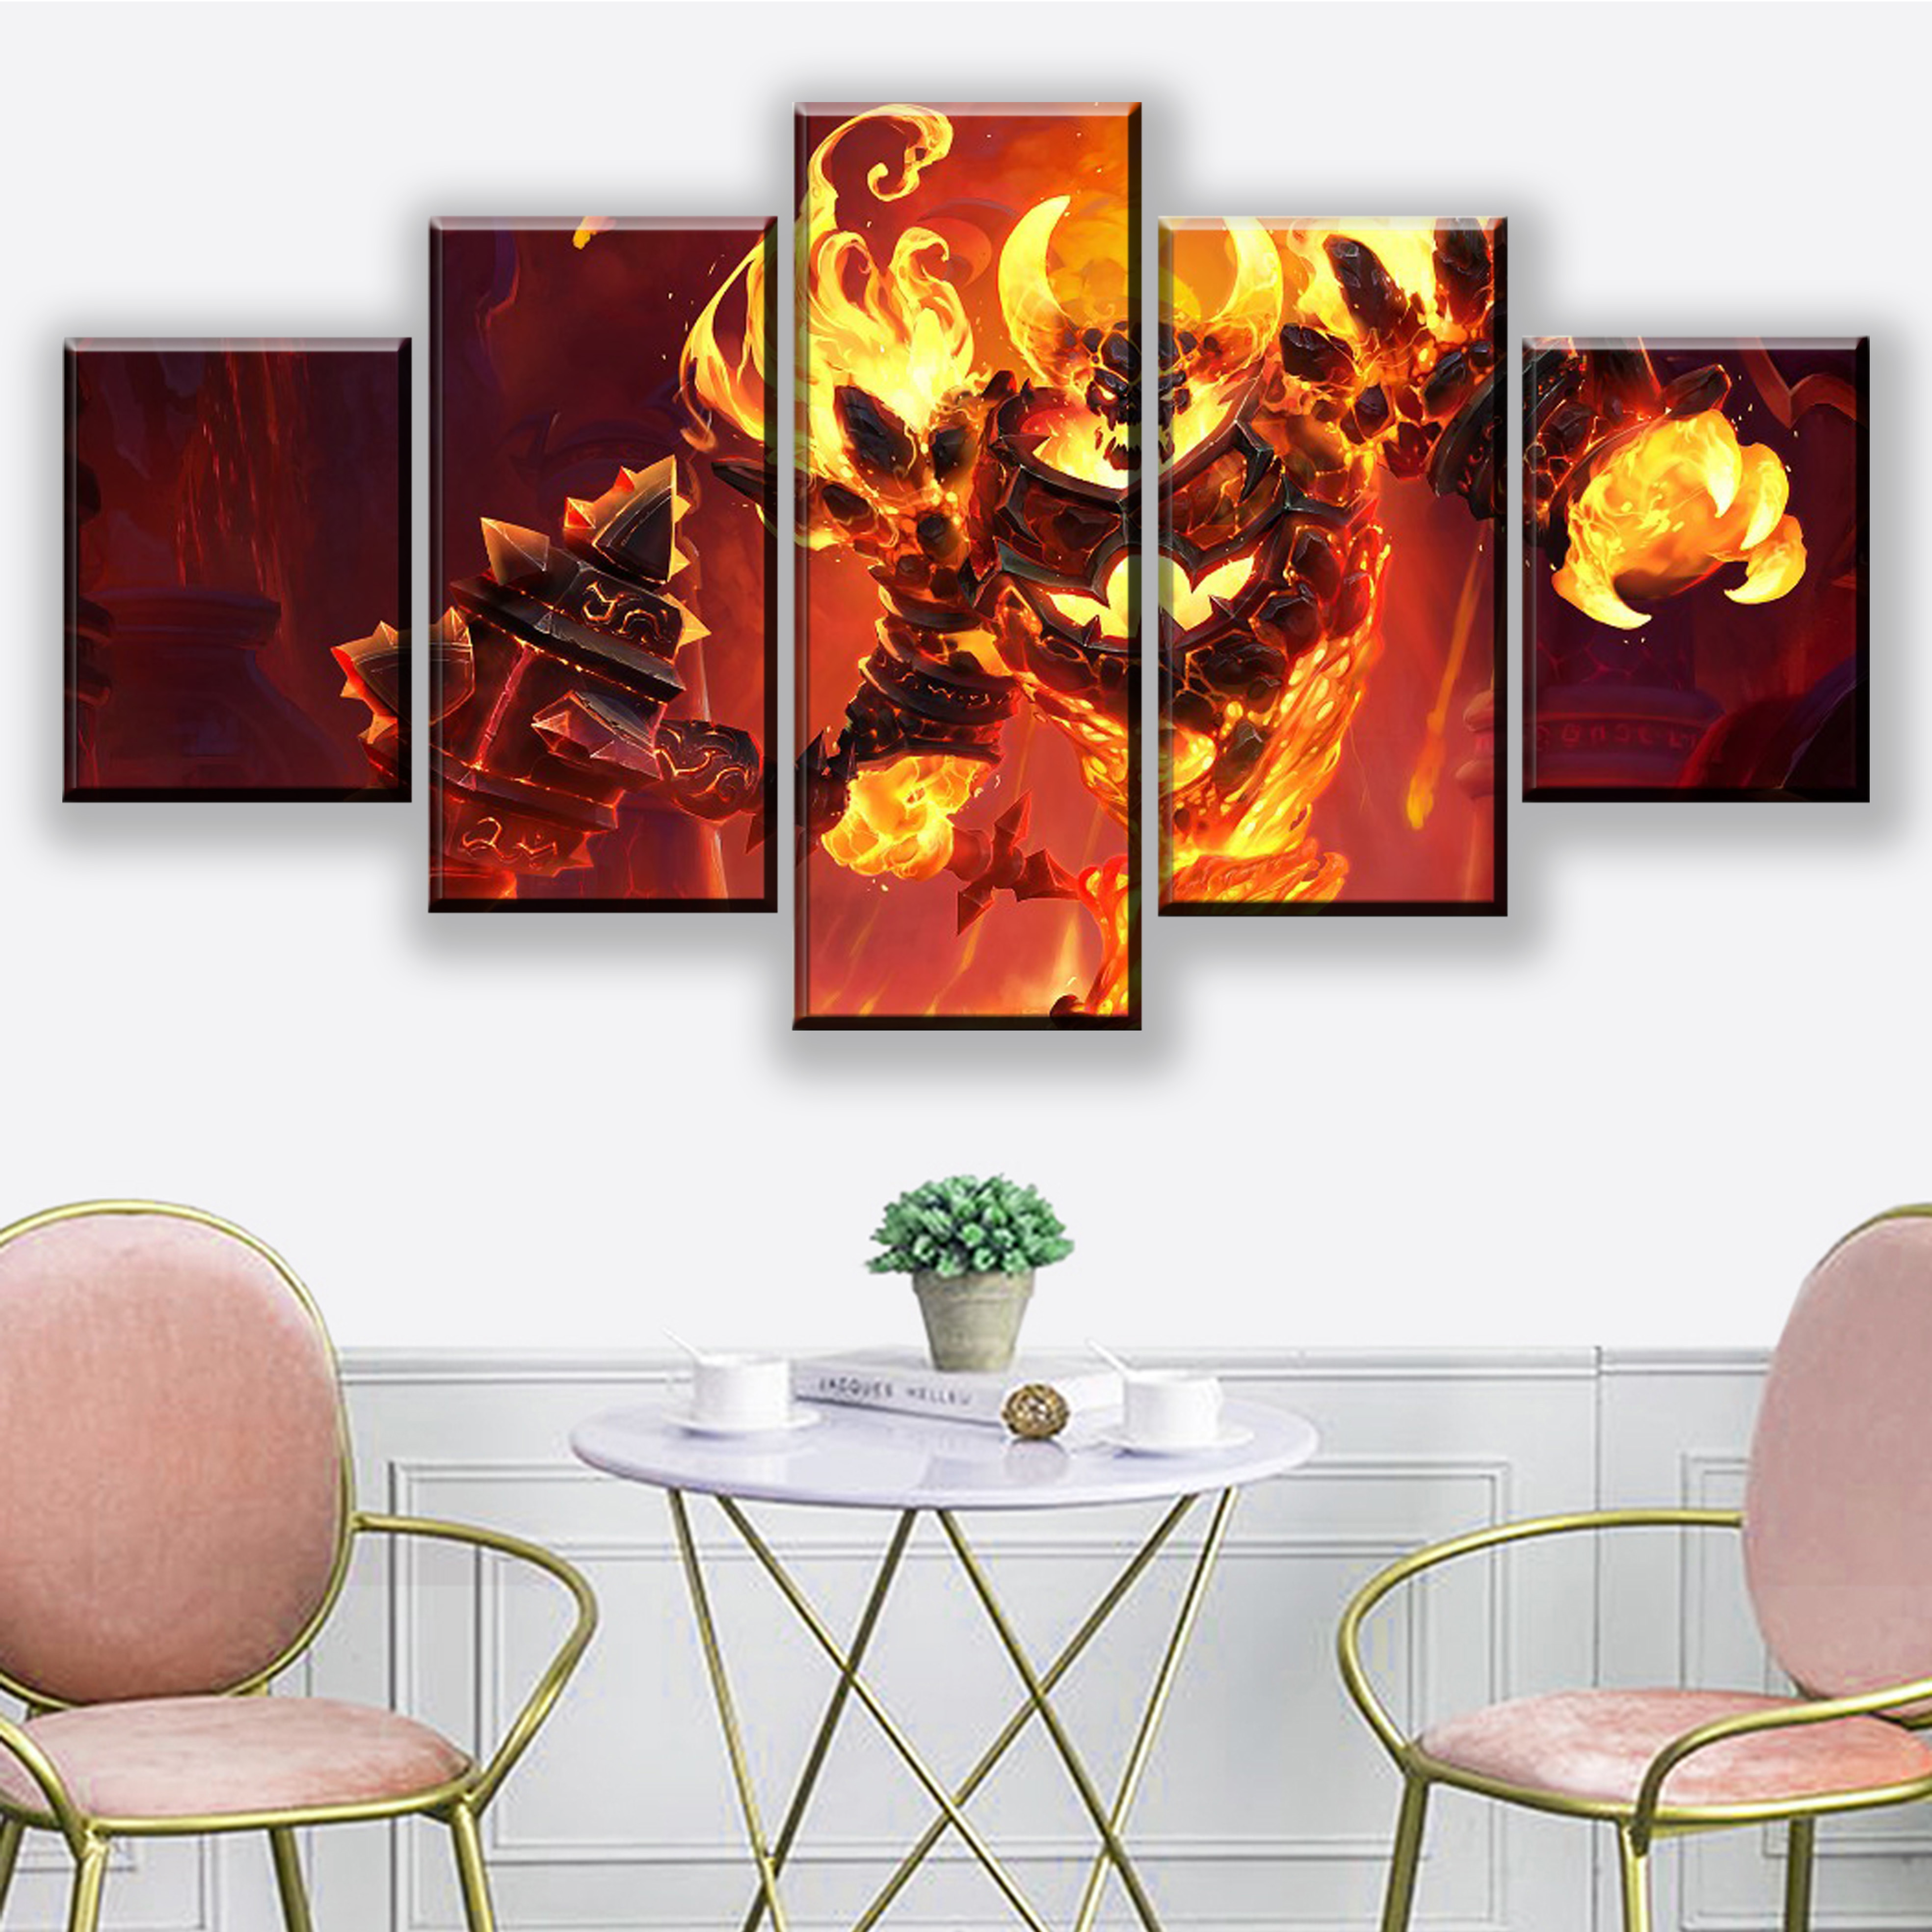 Modular Wall Art Framework Decor 5 Piece Game Heroes of the Storm Poster Ragnaros Painting Living Room Canvas HD Print Picture in Painting Calligraphy from Home Garden